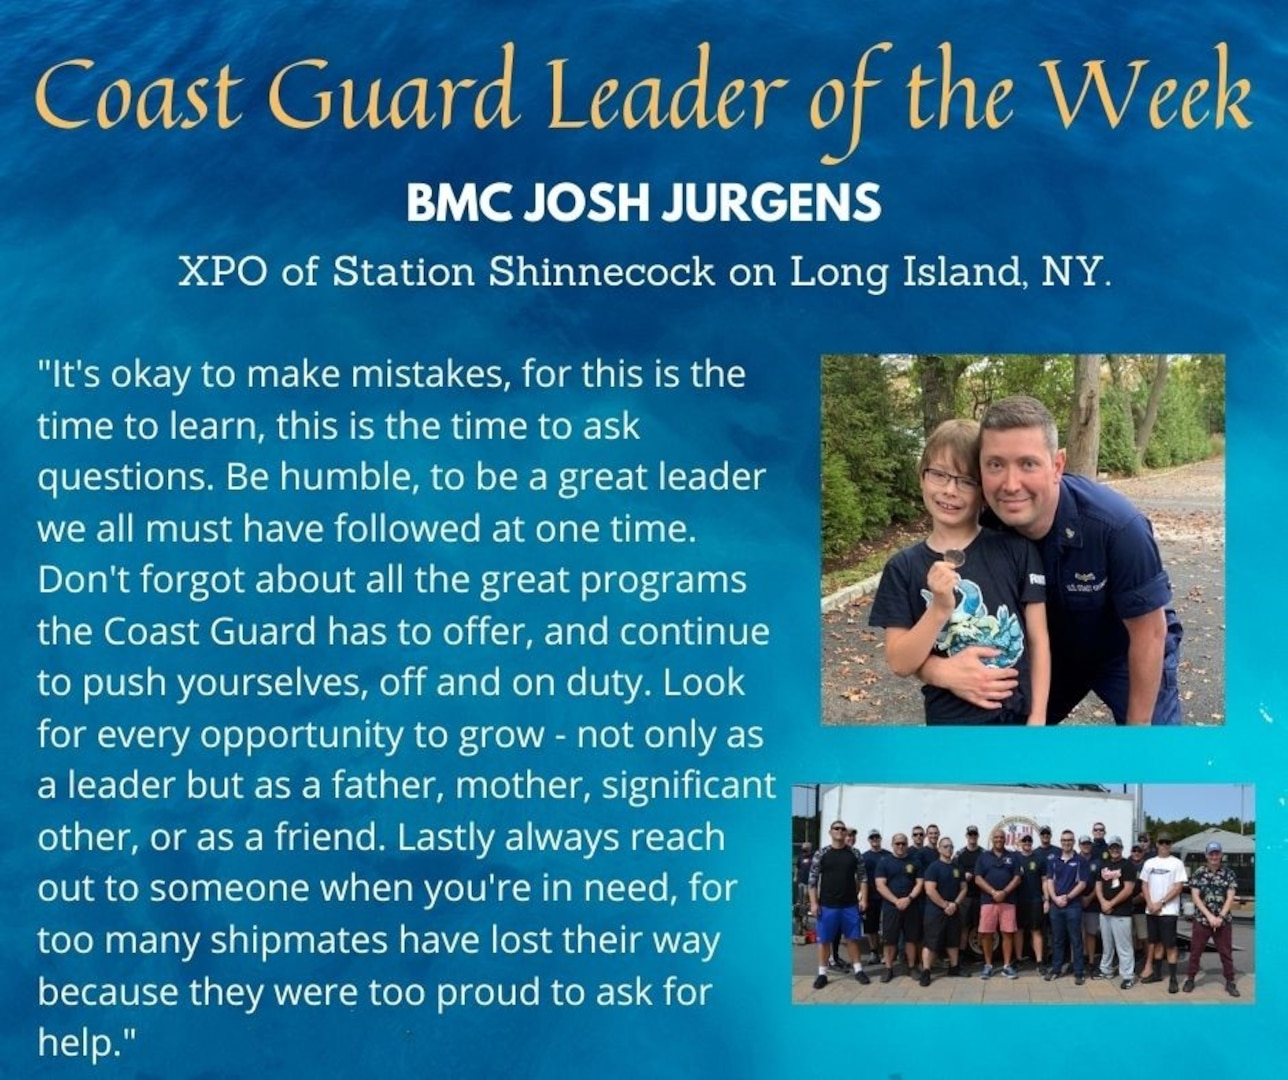 Our Coast Guard Leader of the Week is Chief Petty Officer Josh Jurgens, a boatswain's mate currently serving as the executive petty officer of Station Shinnecock on Long Island, New York.